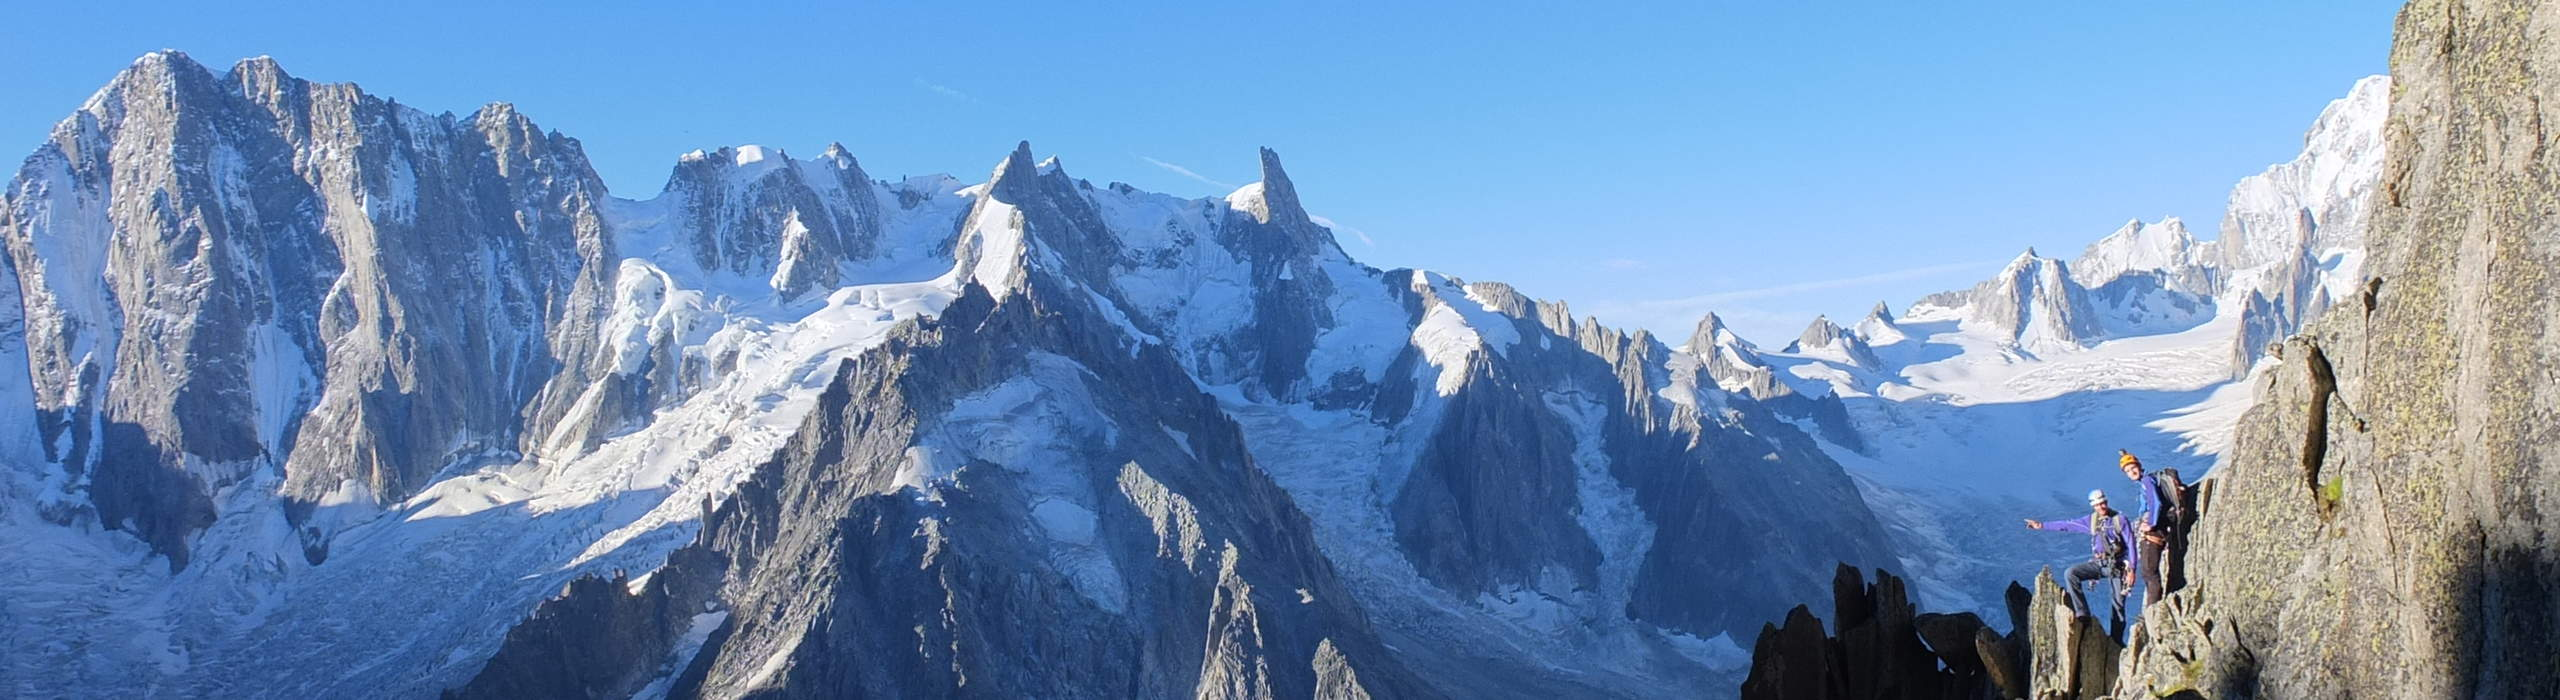 Climbing in Chamonix, Aiguilles and Mont Blanc Massif